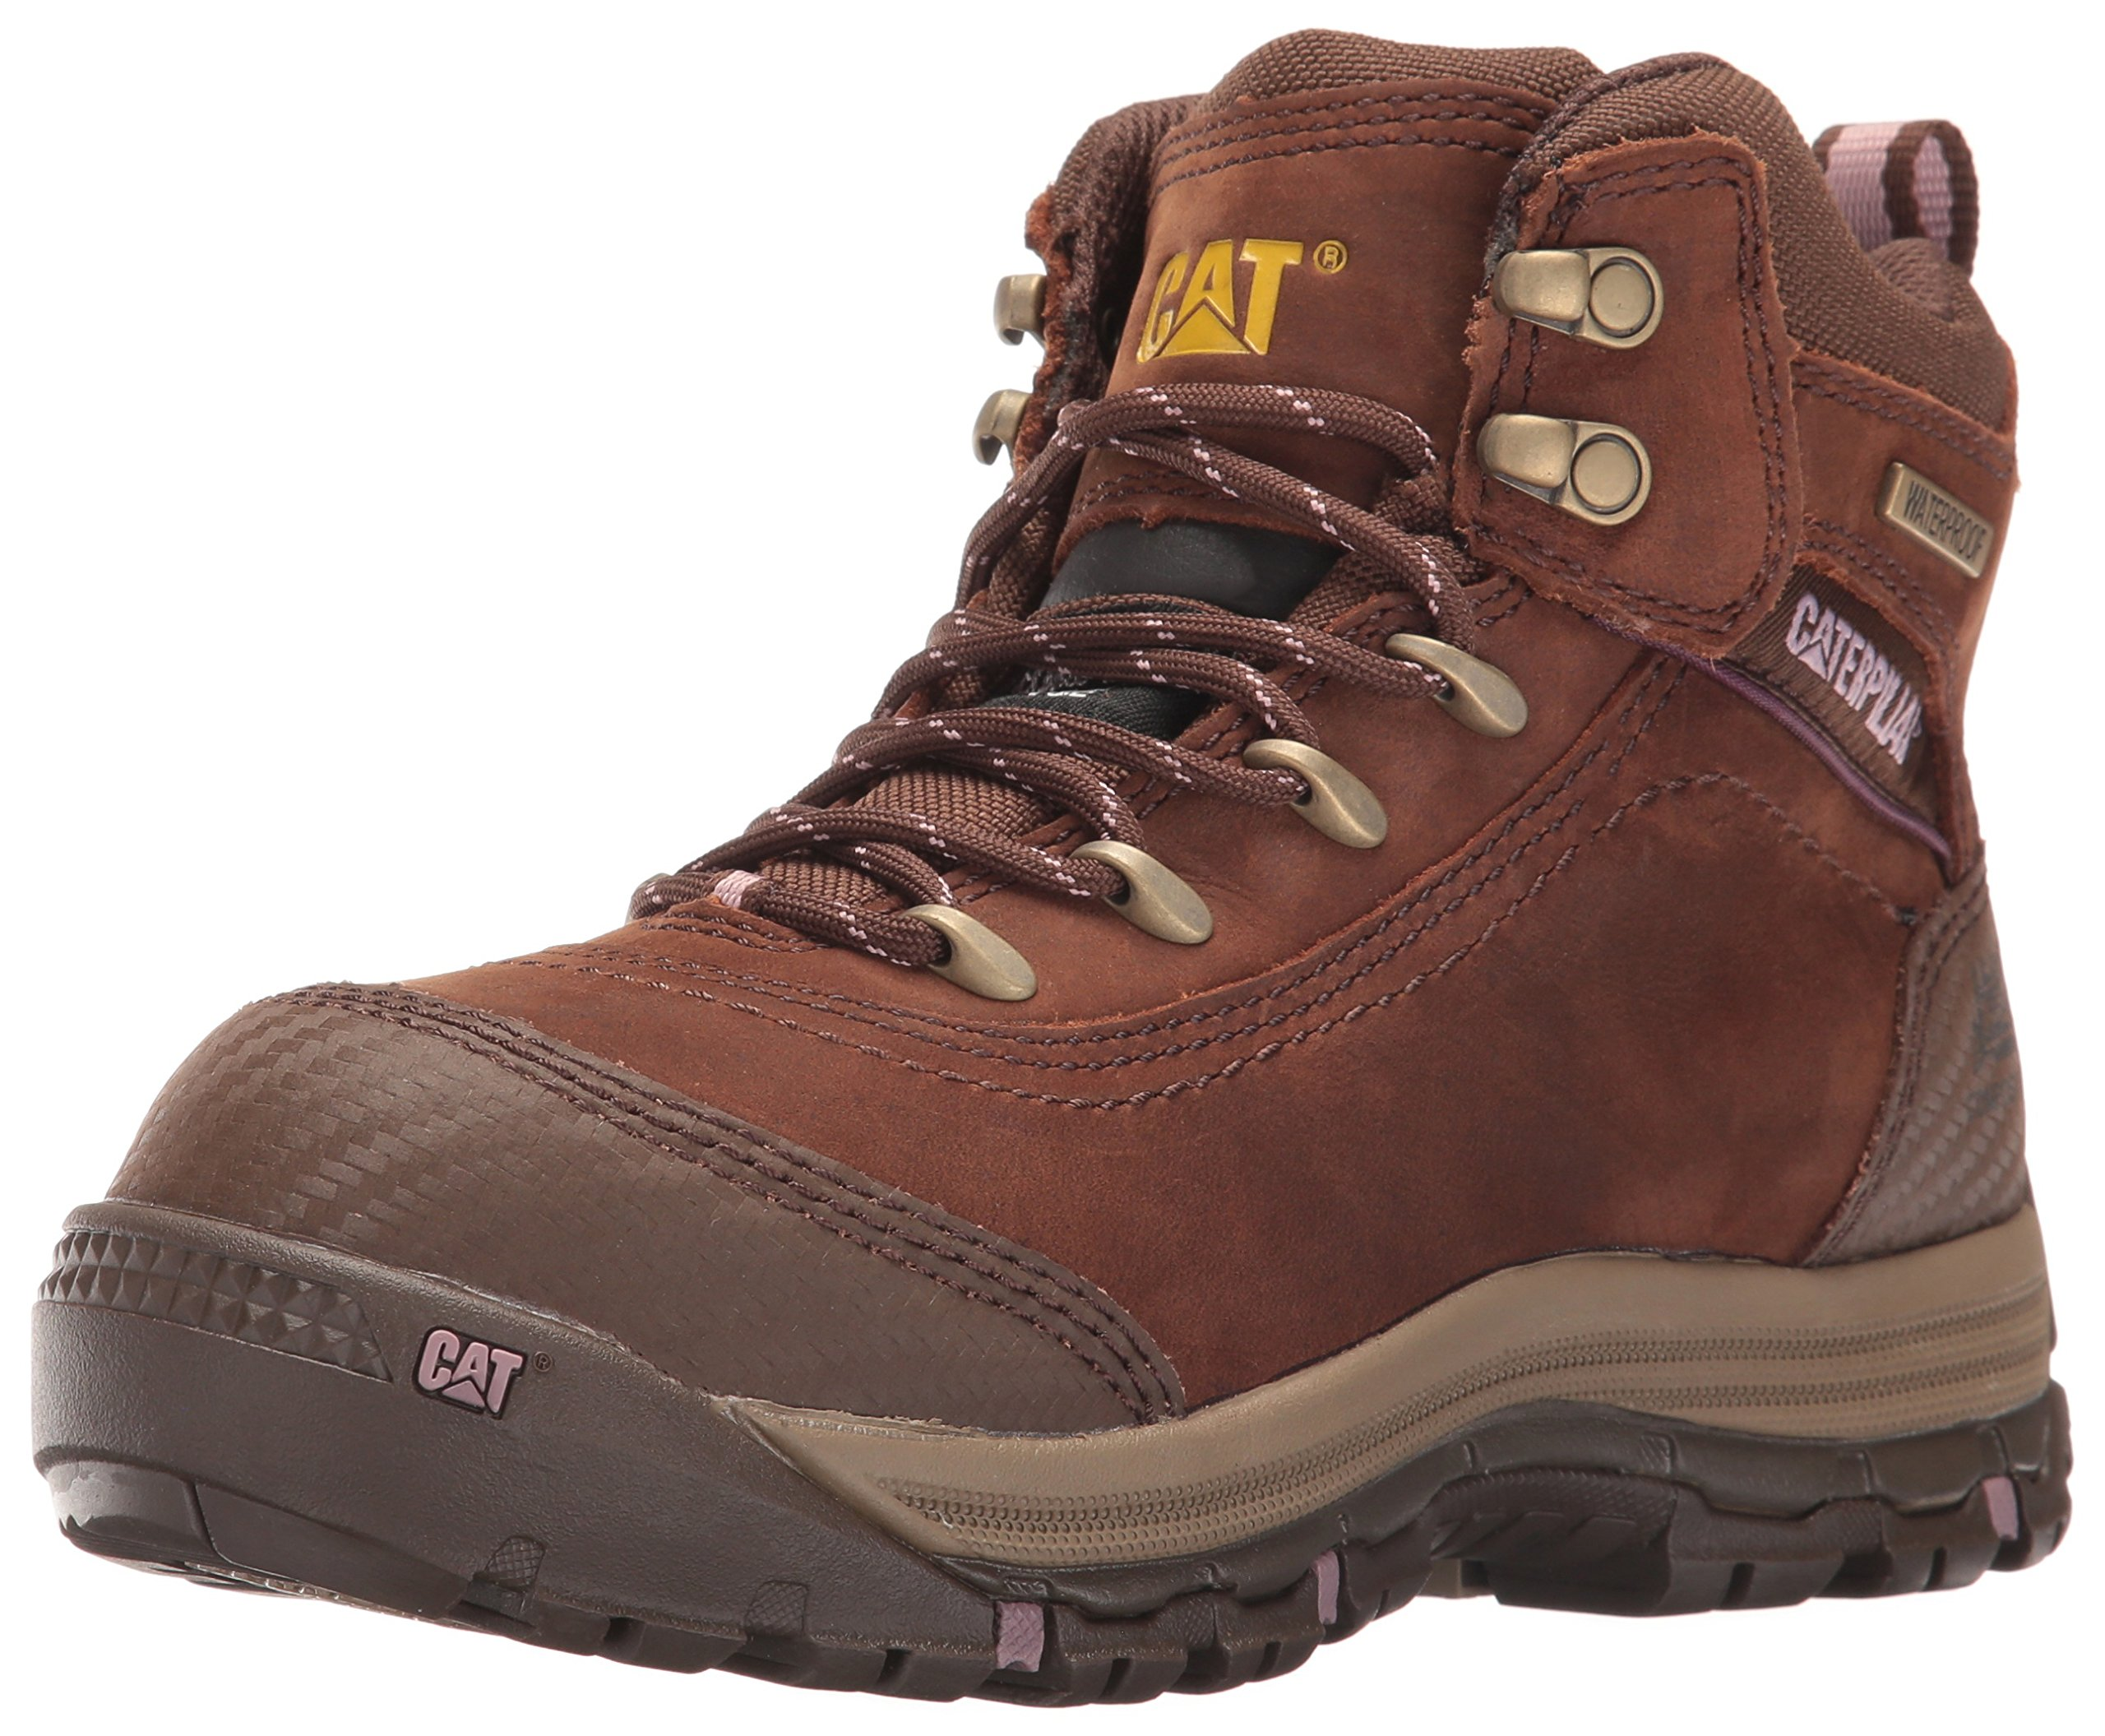 Caterpillar Women's Ally 6'' Waterproof Comp Toe Industrial and Construction Shoe, Brown, 6.5 M US by Caterpillar